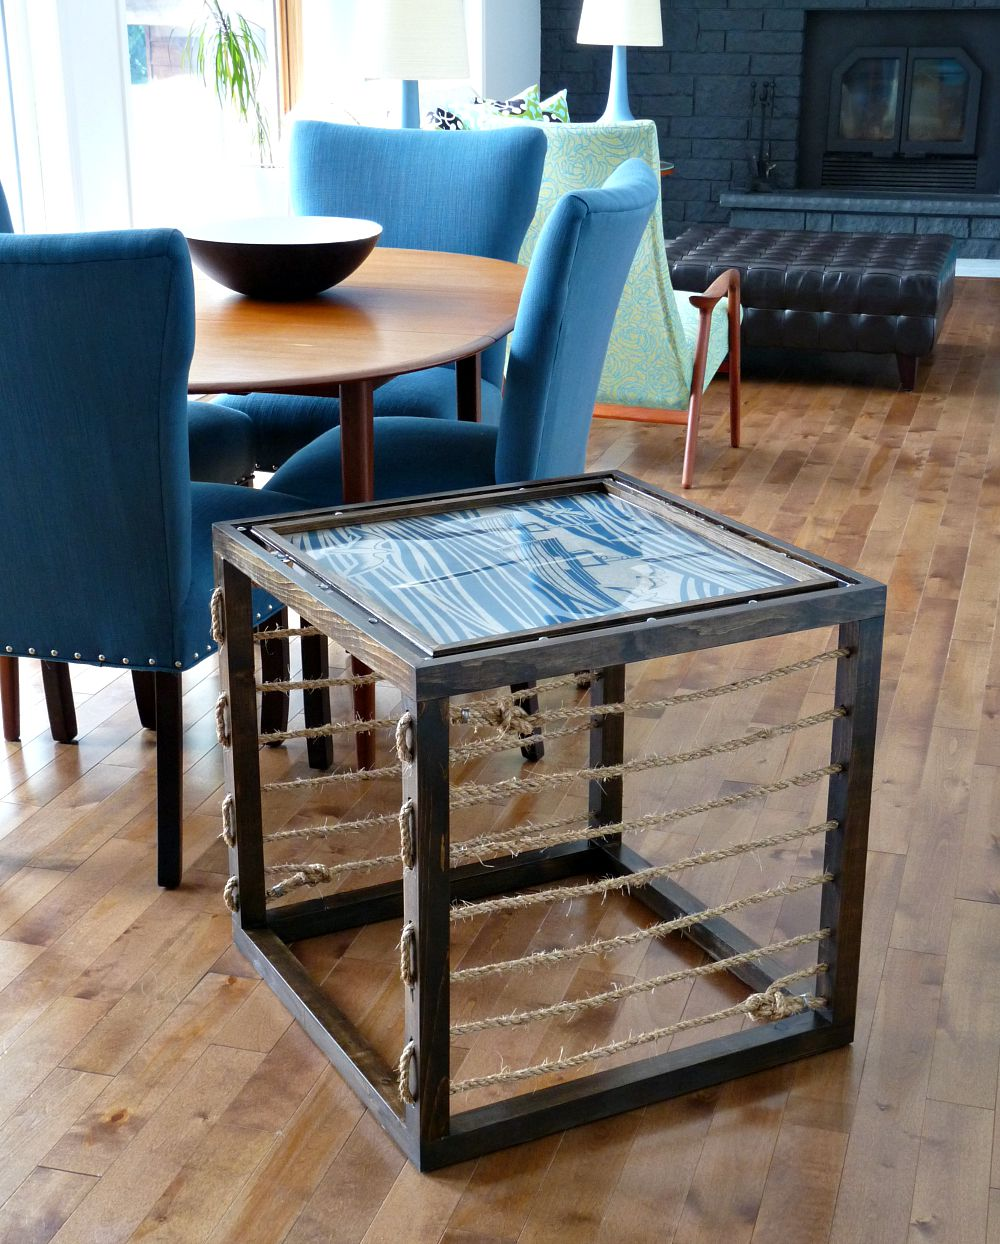 #LoveYourWood DIY Nautical Table Contest